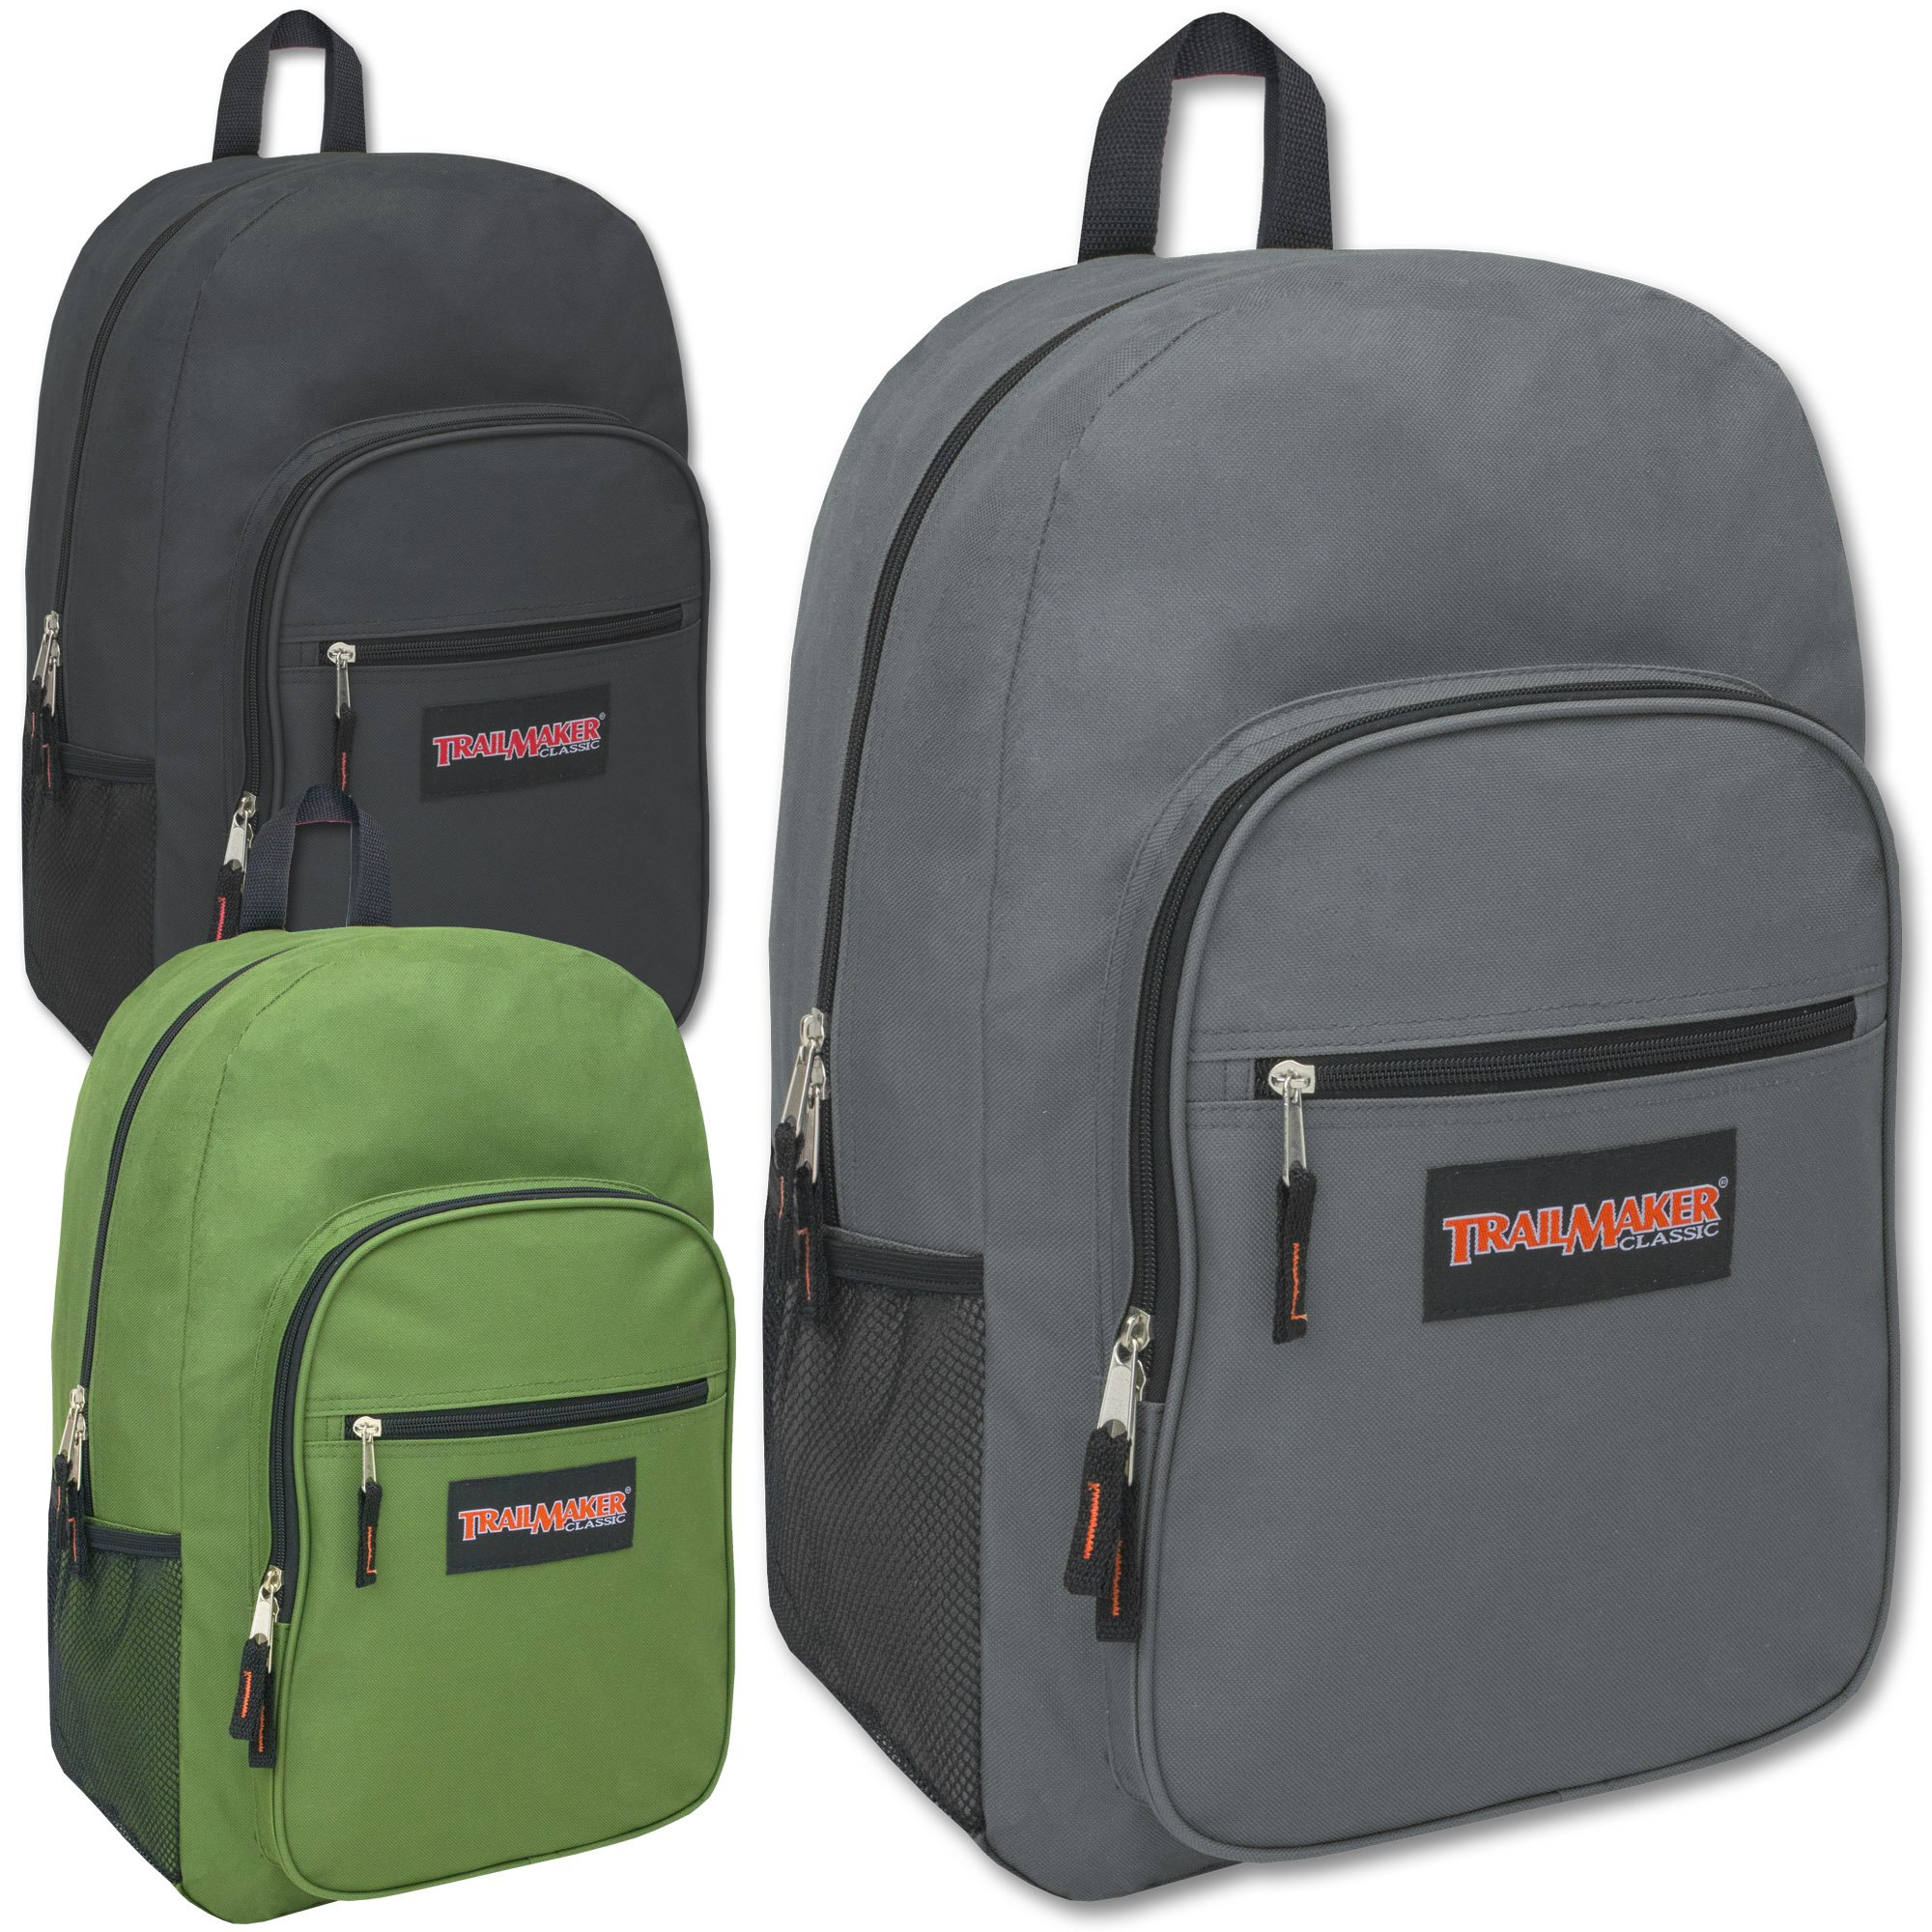 Wholesale Trailmaker Deluxe 19 Inch Backpack Case Pack 24 by Trail maker